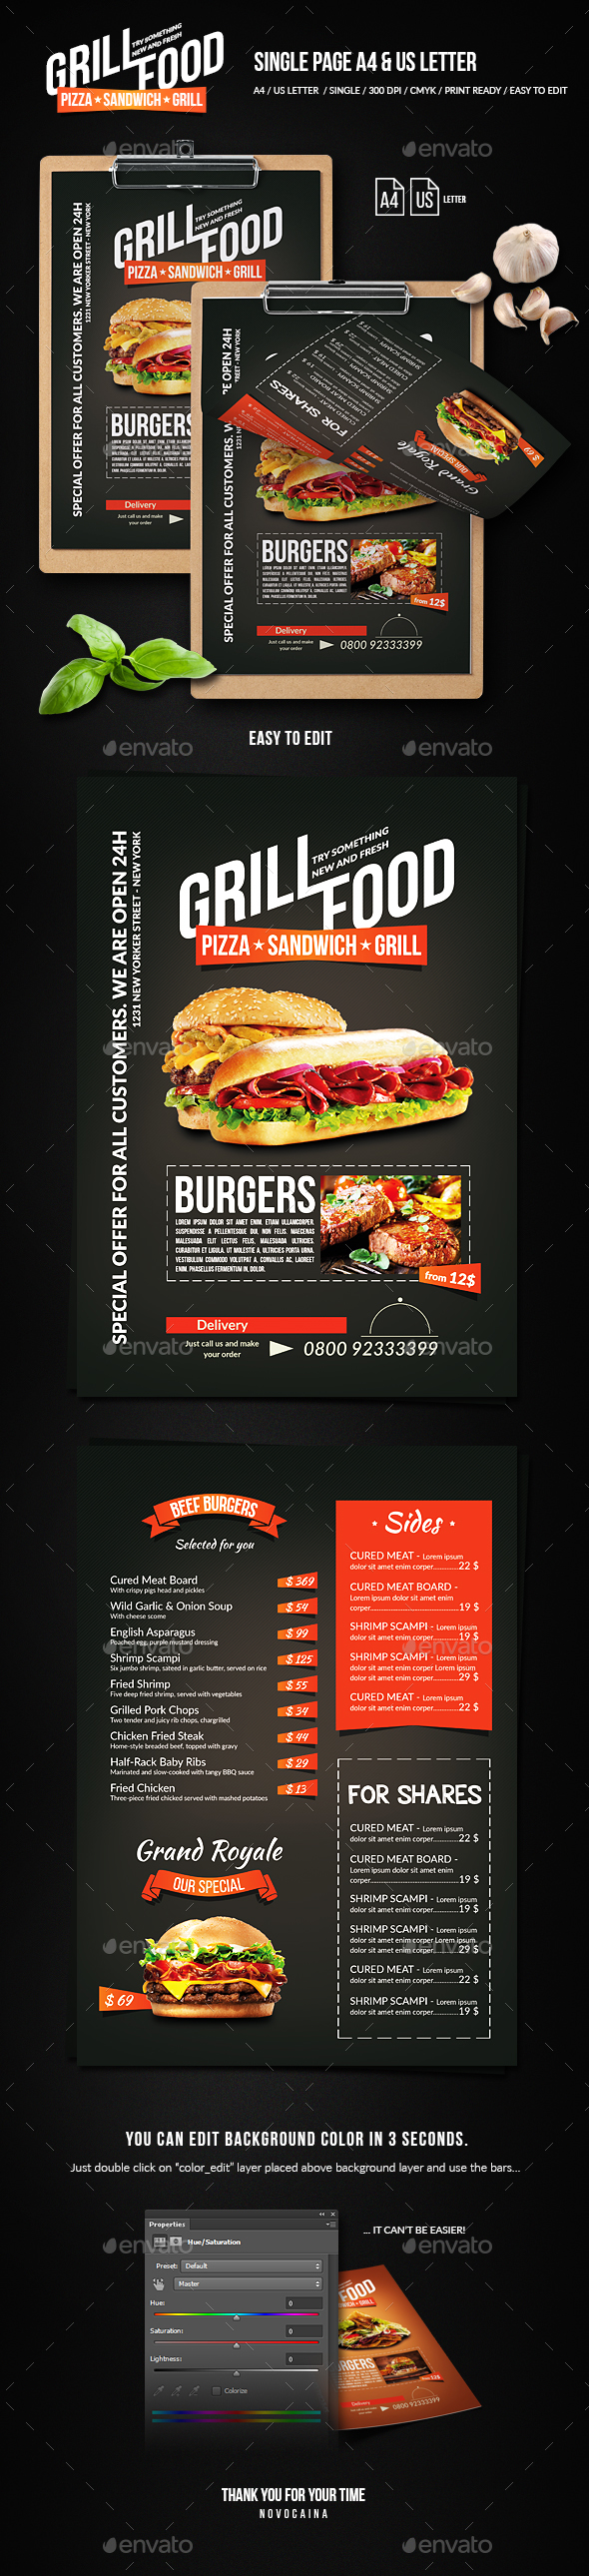 Grill BBQ Single Page Food Menu - A4 and US Letter - Food Menus Print Templates